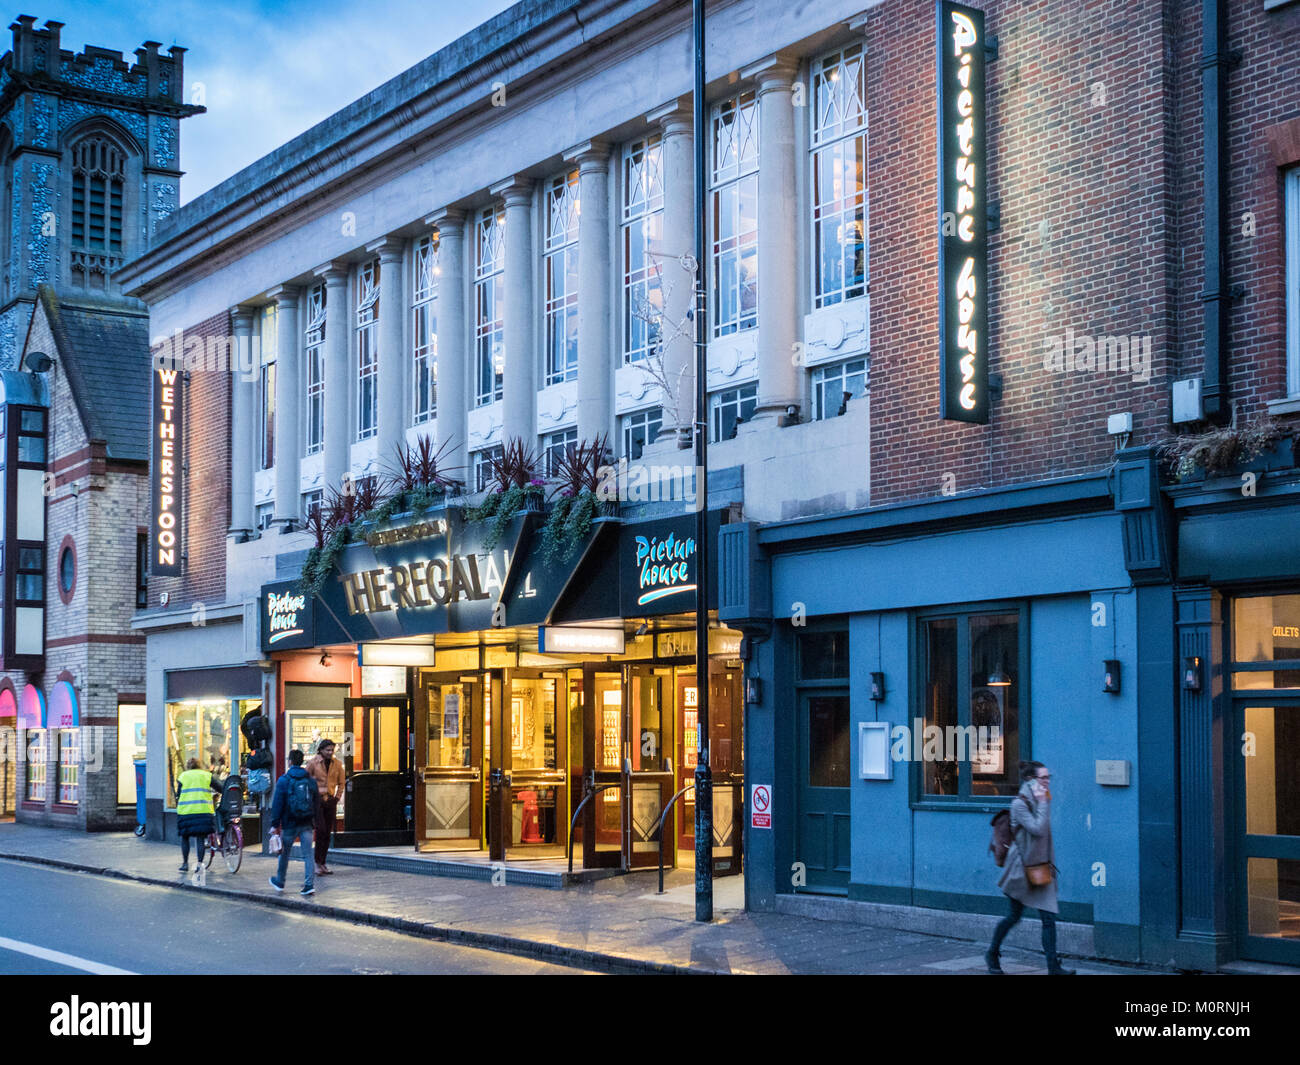 Cambridge Arts Picturehouse Cinema on Regent Street in central Cambridge UK - part of the Picturehouse cinema network - Stock Image